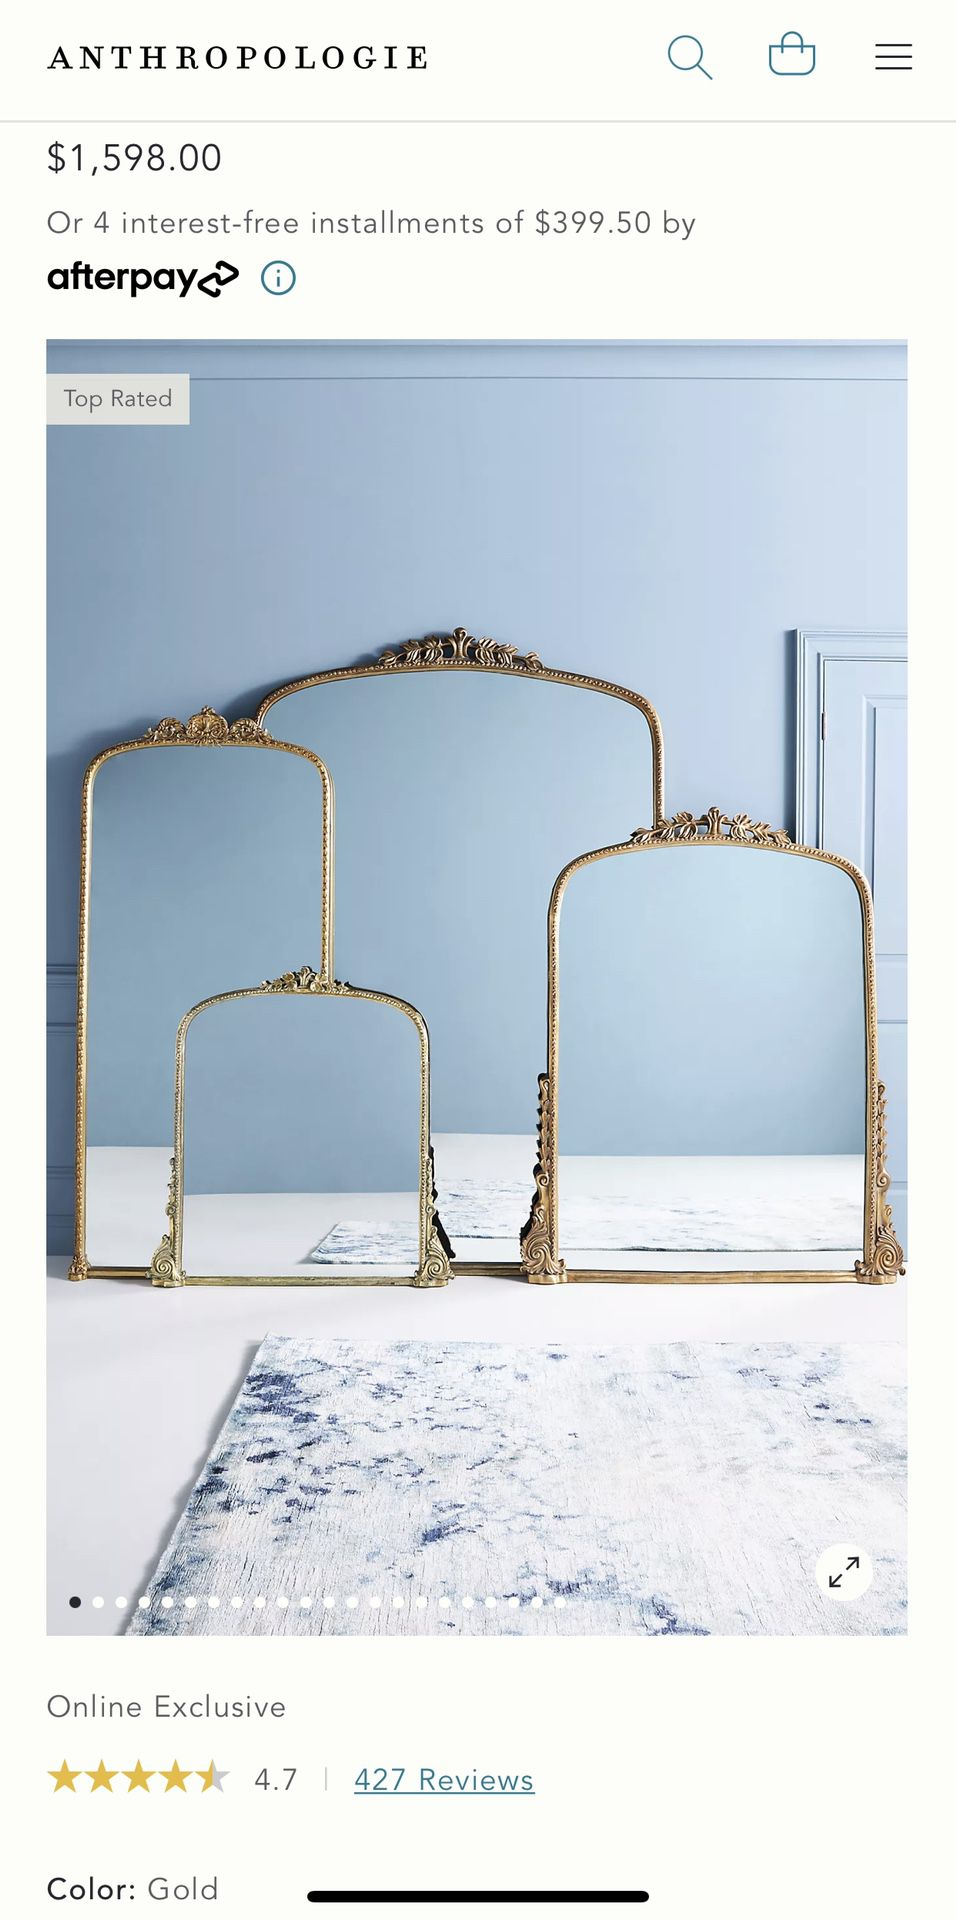 Anthropology Gleaming Primrose Mirror Gold: biggest size - 7'  New - we ordered 2 colors to see which one will match our decor better and waited for a